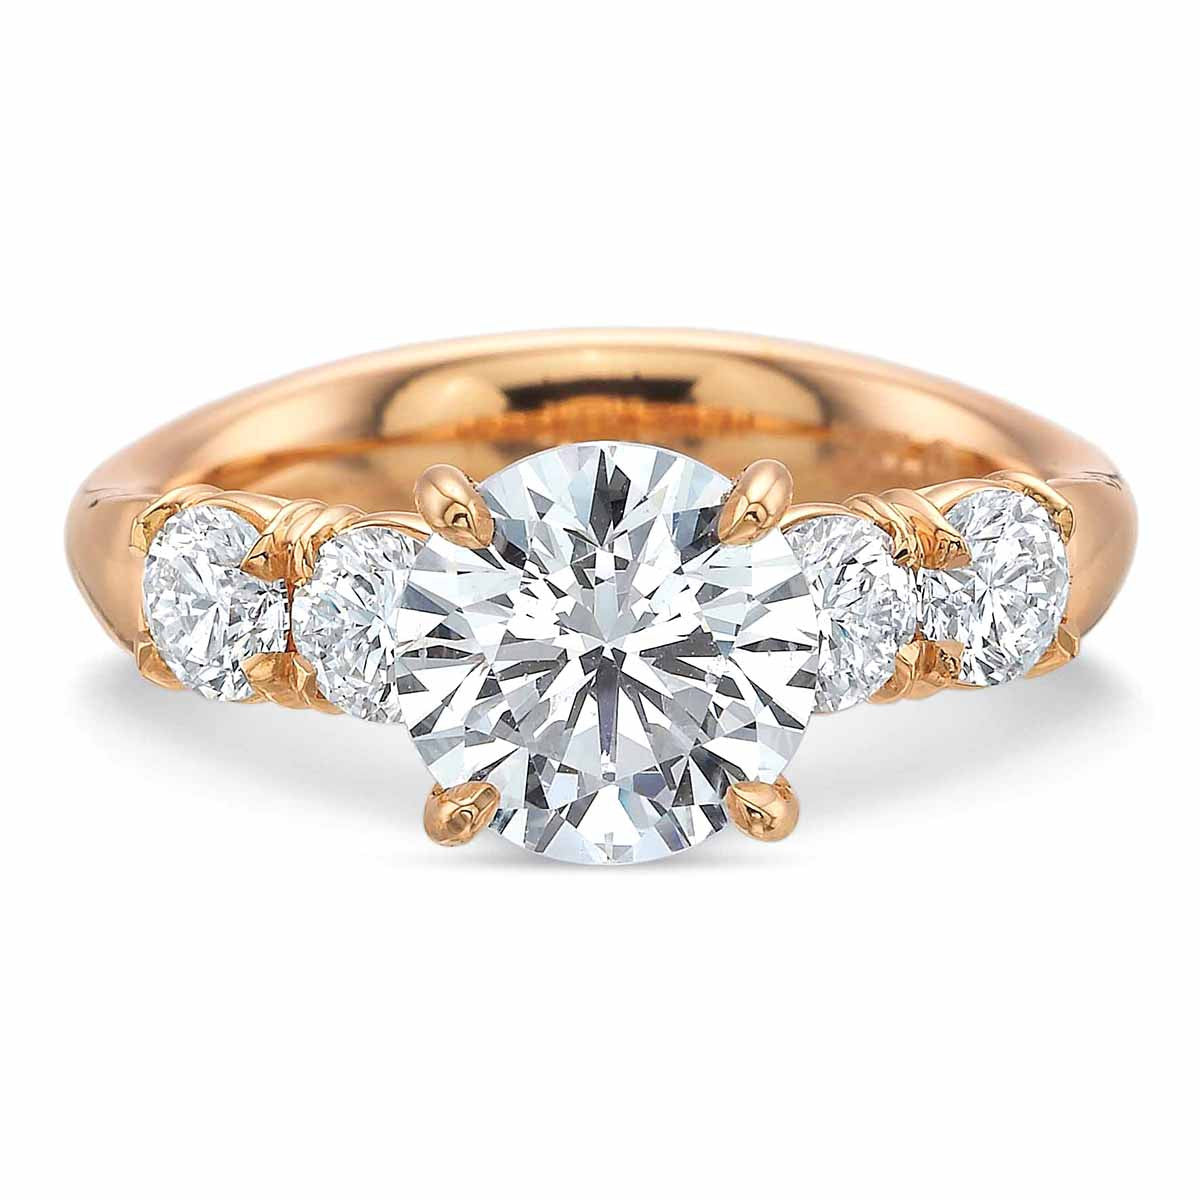 18K Rose Gold 4 Stone Diamond Engagement Ring